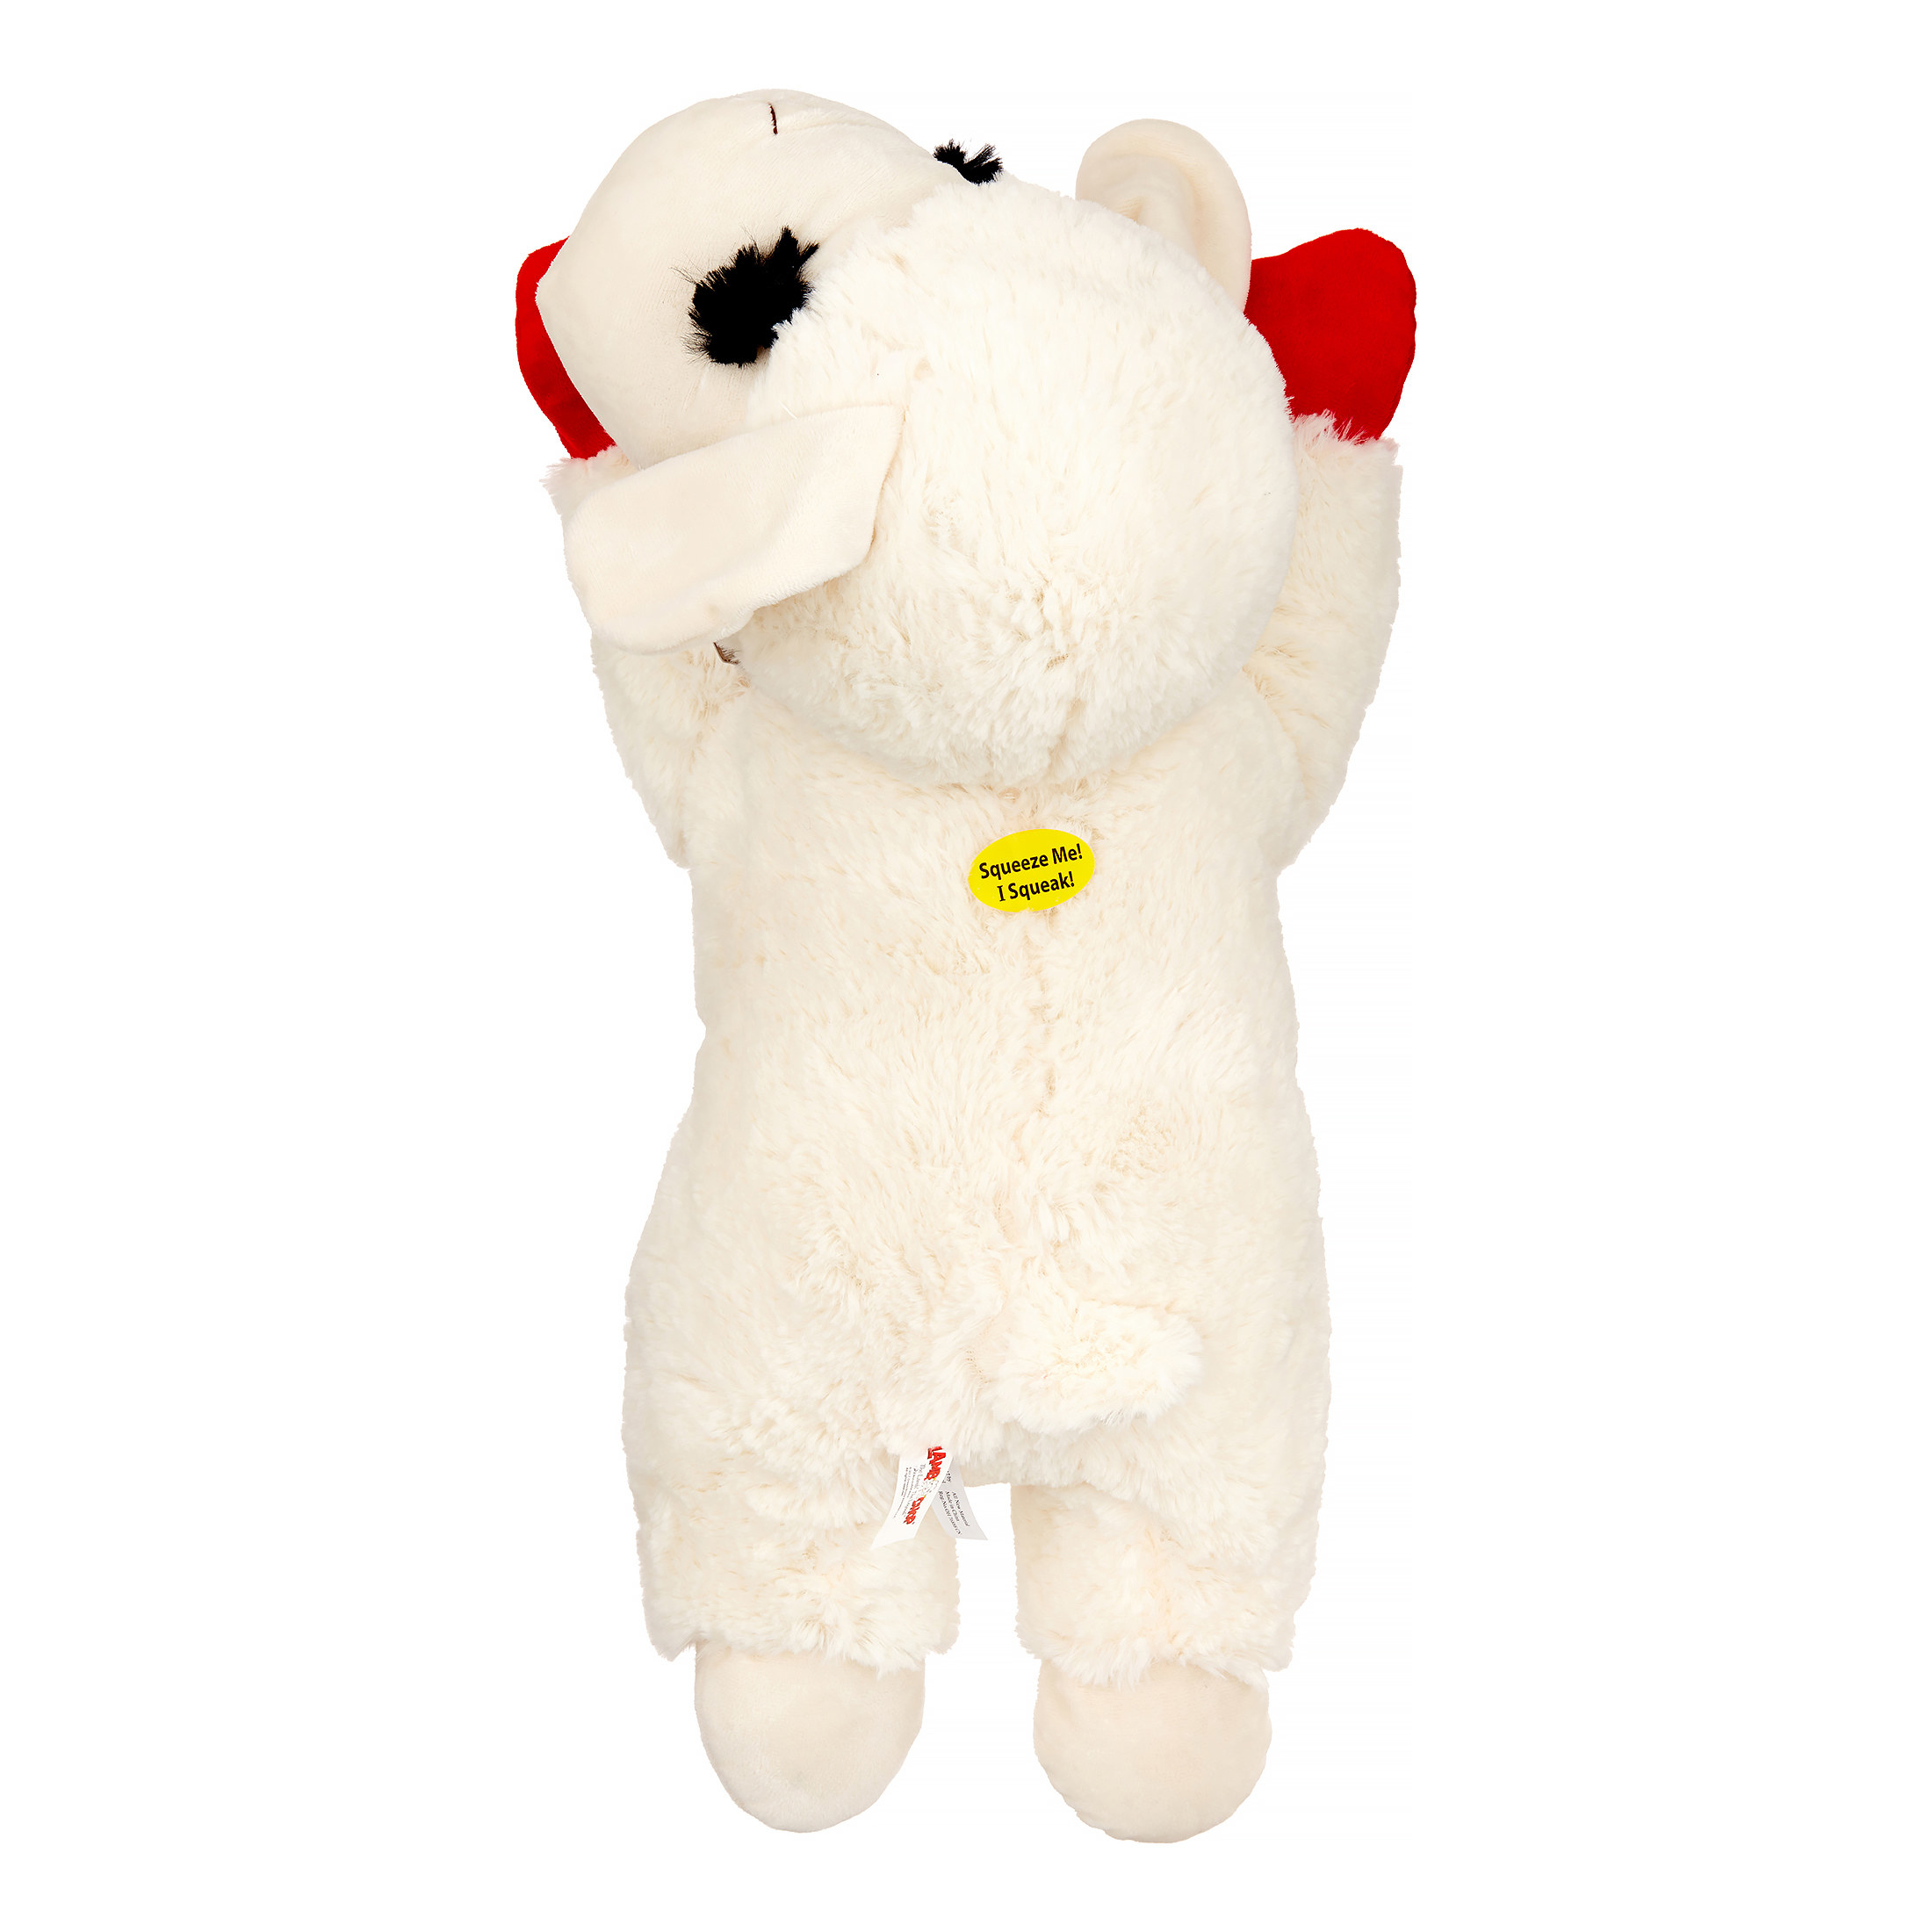 The fluffy white lamb toy